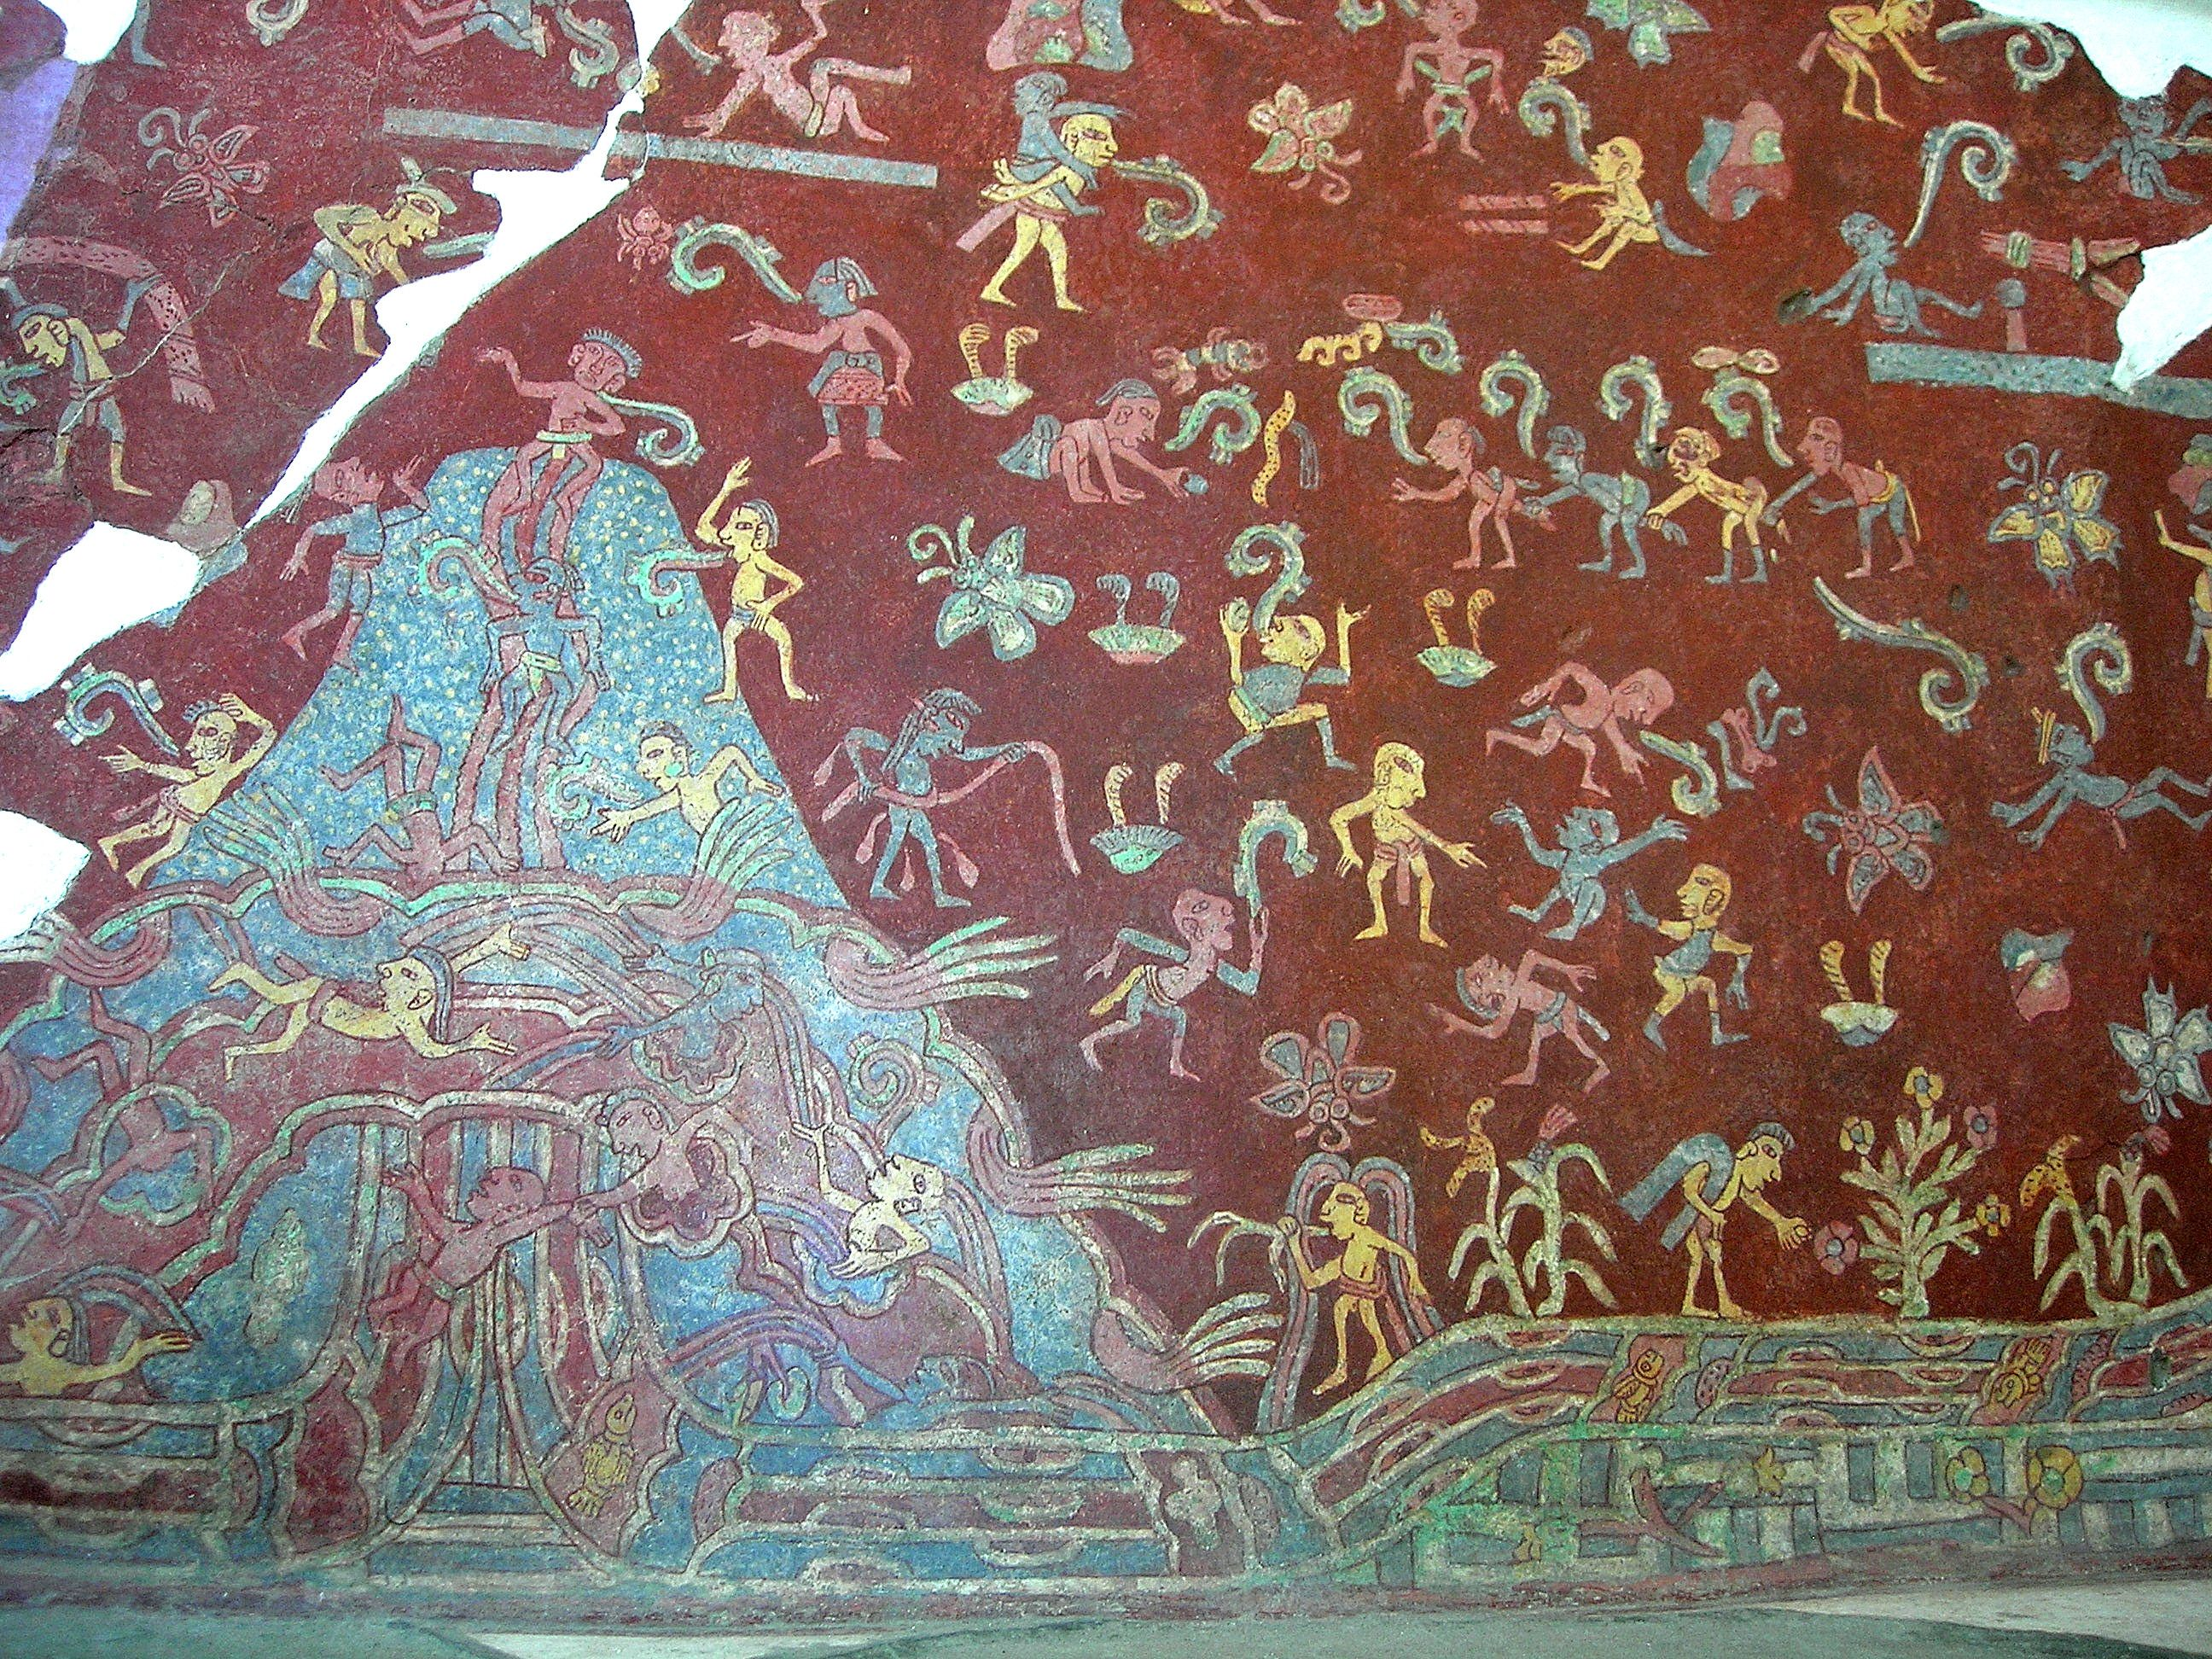 Tepantitlamountainstreammuralteotihuacanluistello mexico a portion of the actual mural from the tepantitla compound which appears under the great goddess portrait amipublicfo Choice Image